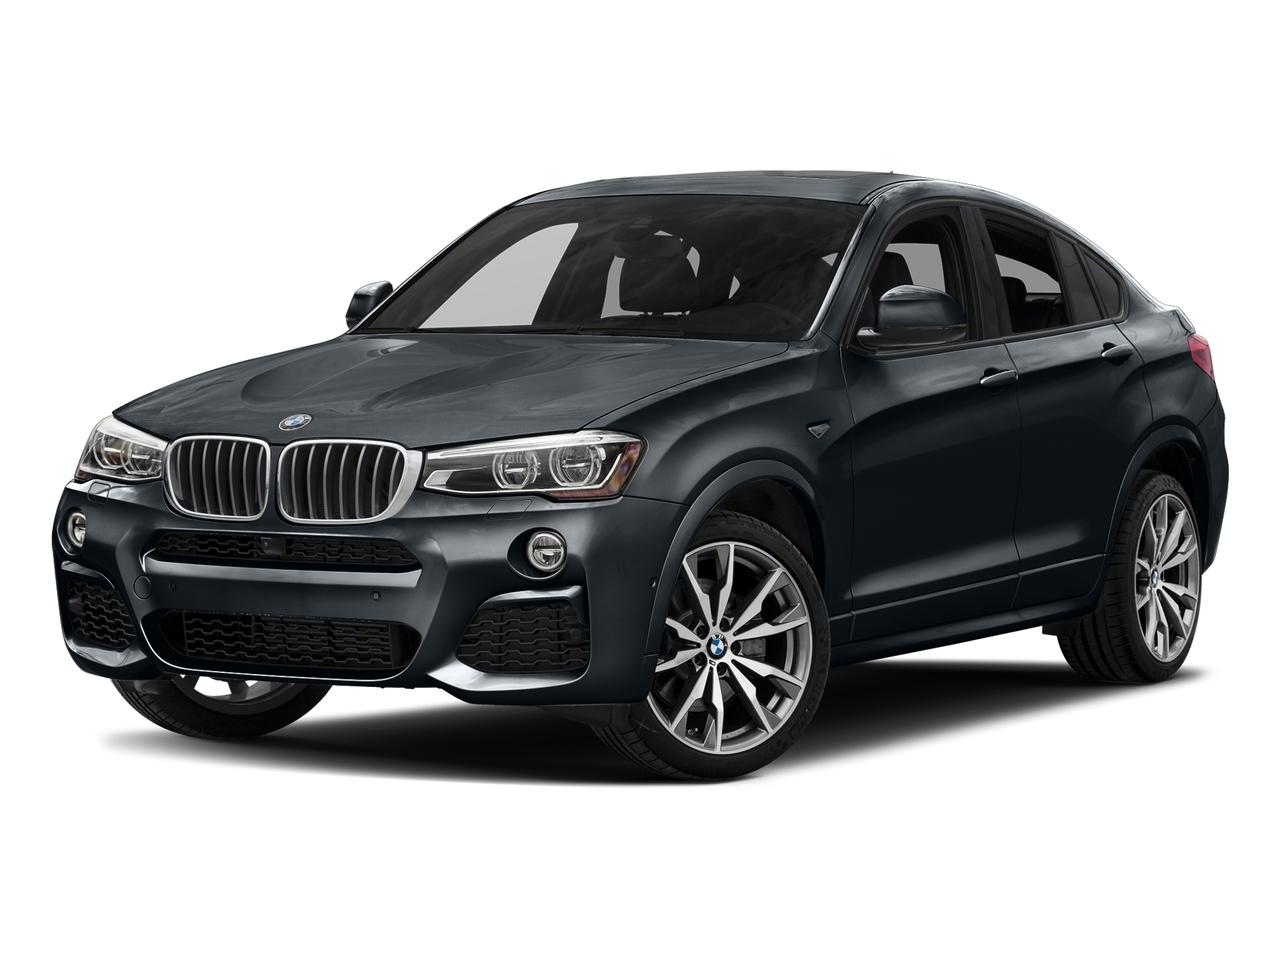 2018 BMW X4 M40i Vehicle Photo in Pleasanton, CA 94588